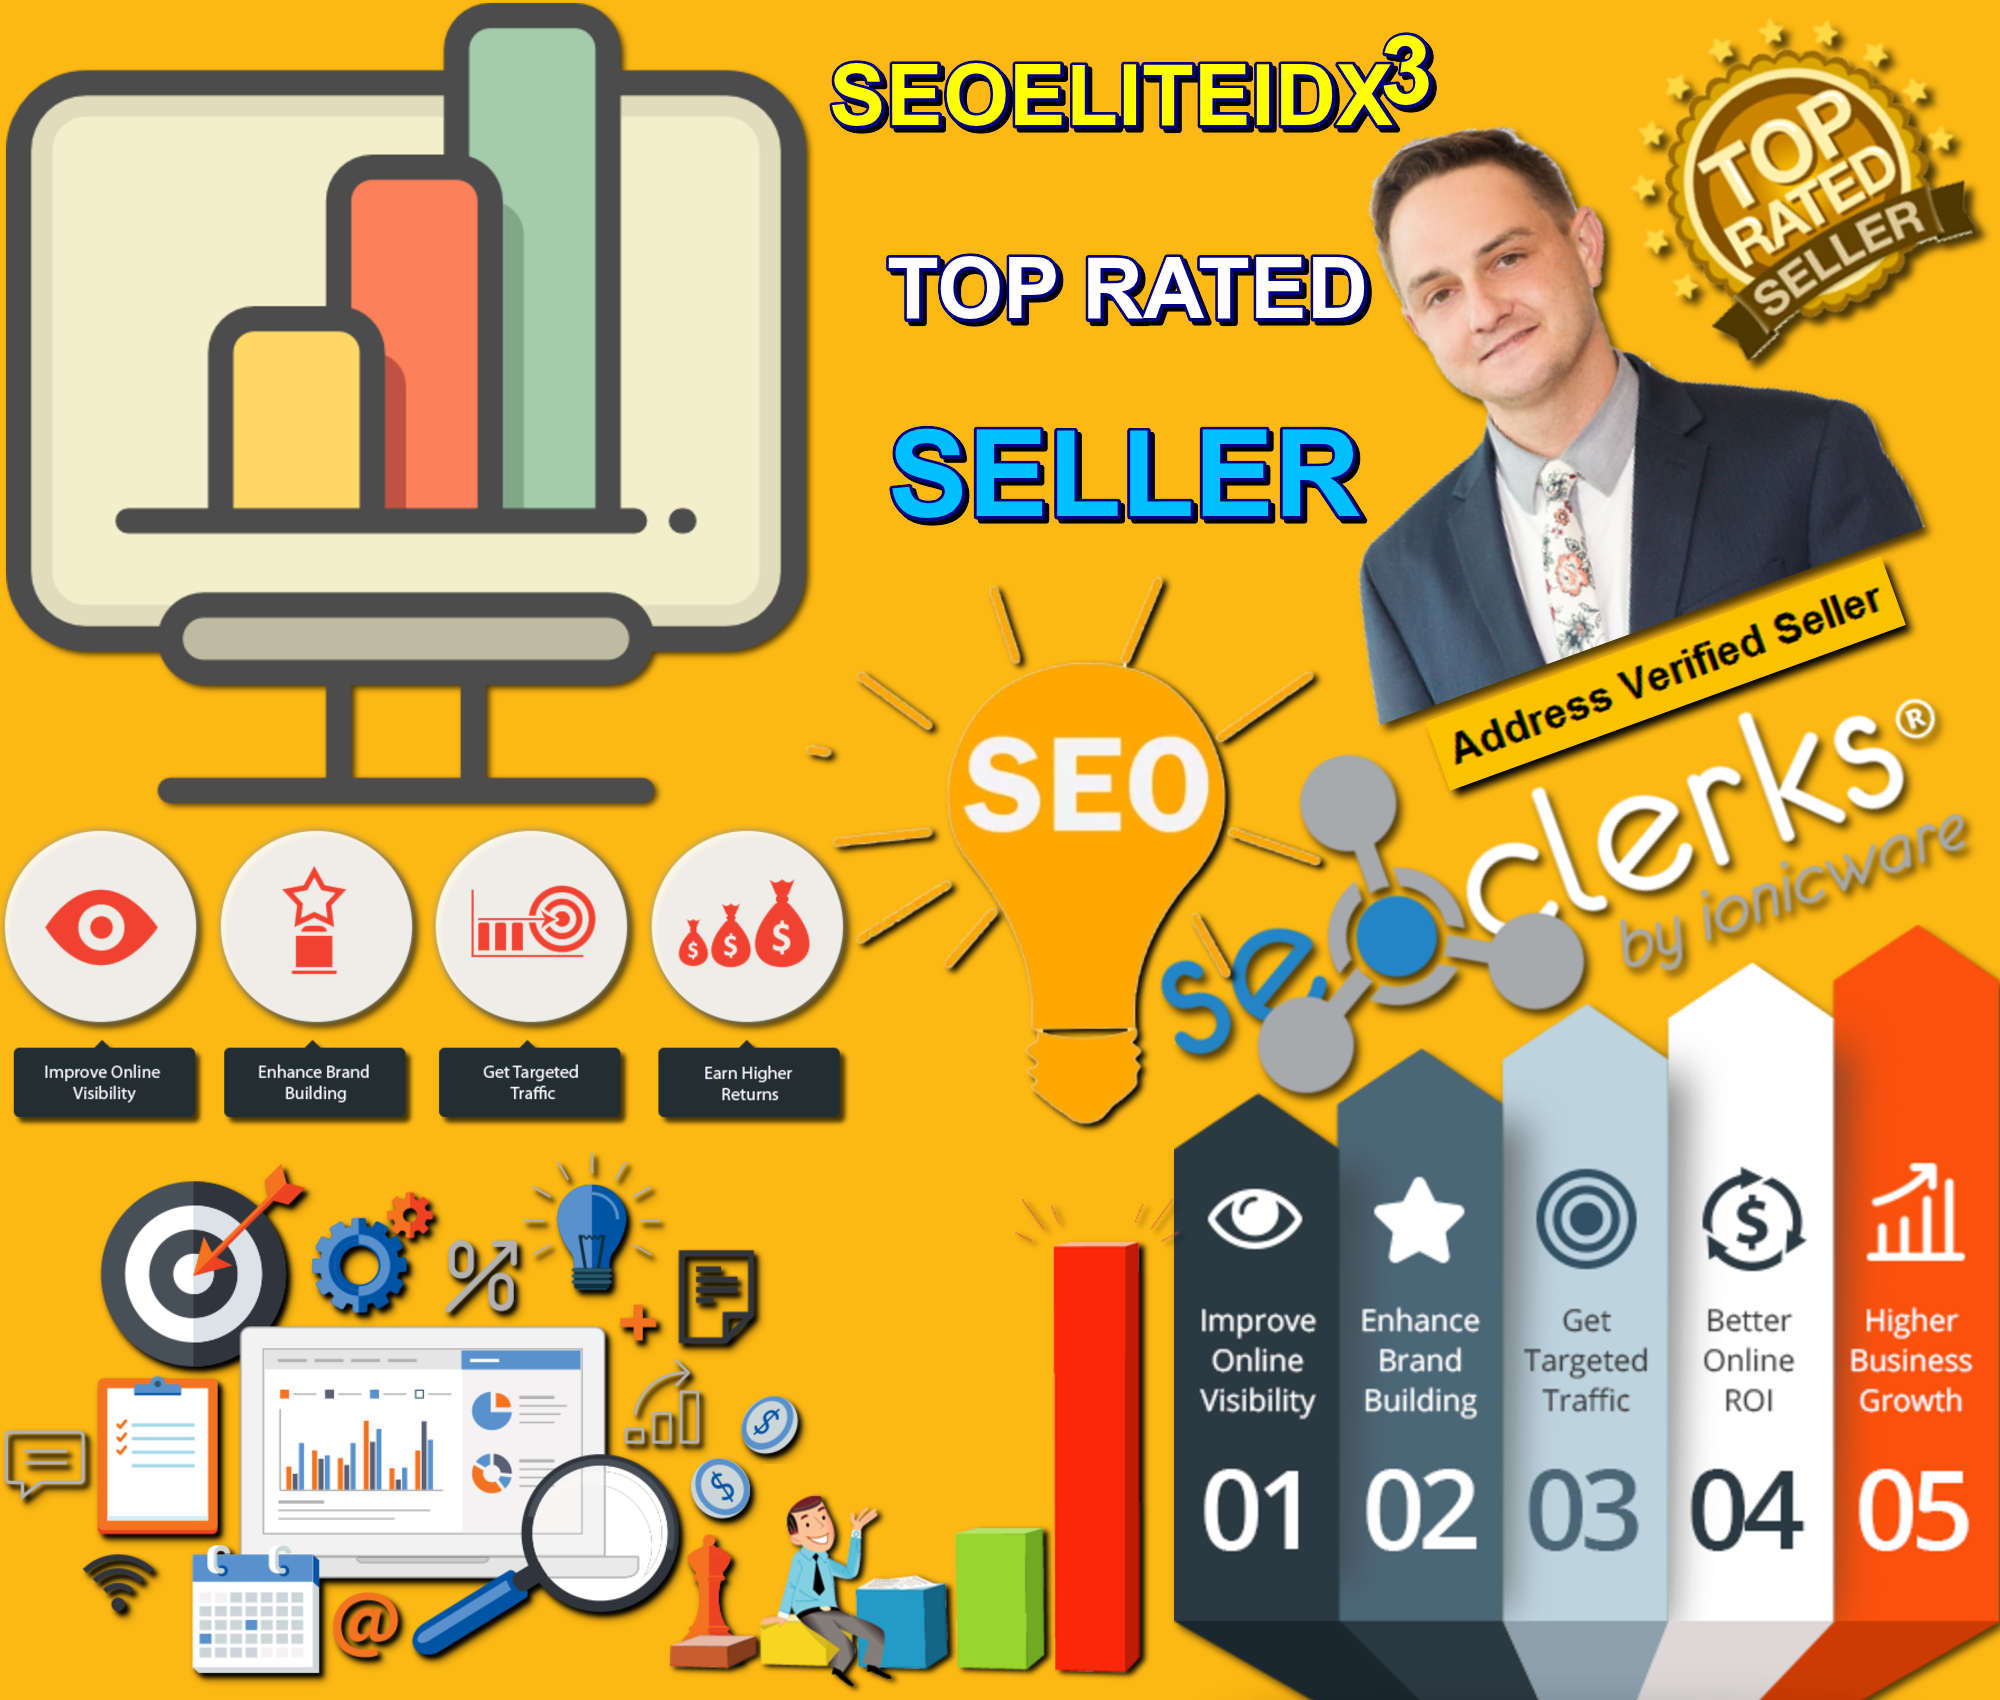 Get Powerful 5 Million Real Unique Clicks Social Shares Worldwide USA Social Media Affiliate Marketing SEO Business Promotion Website Traffic Will Shoot Your WebSite Into TOP Boost Help To Rankings